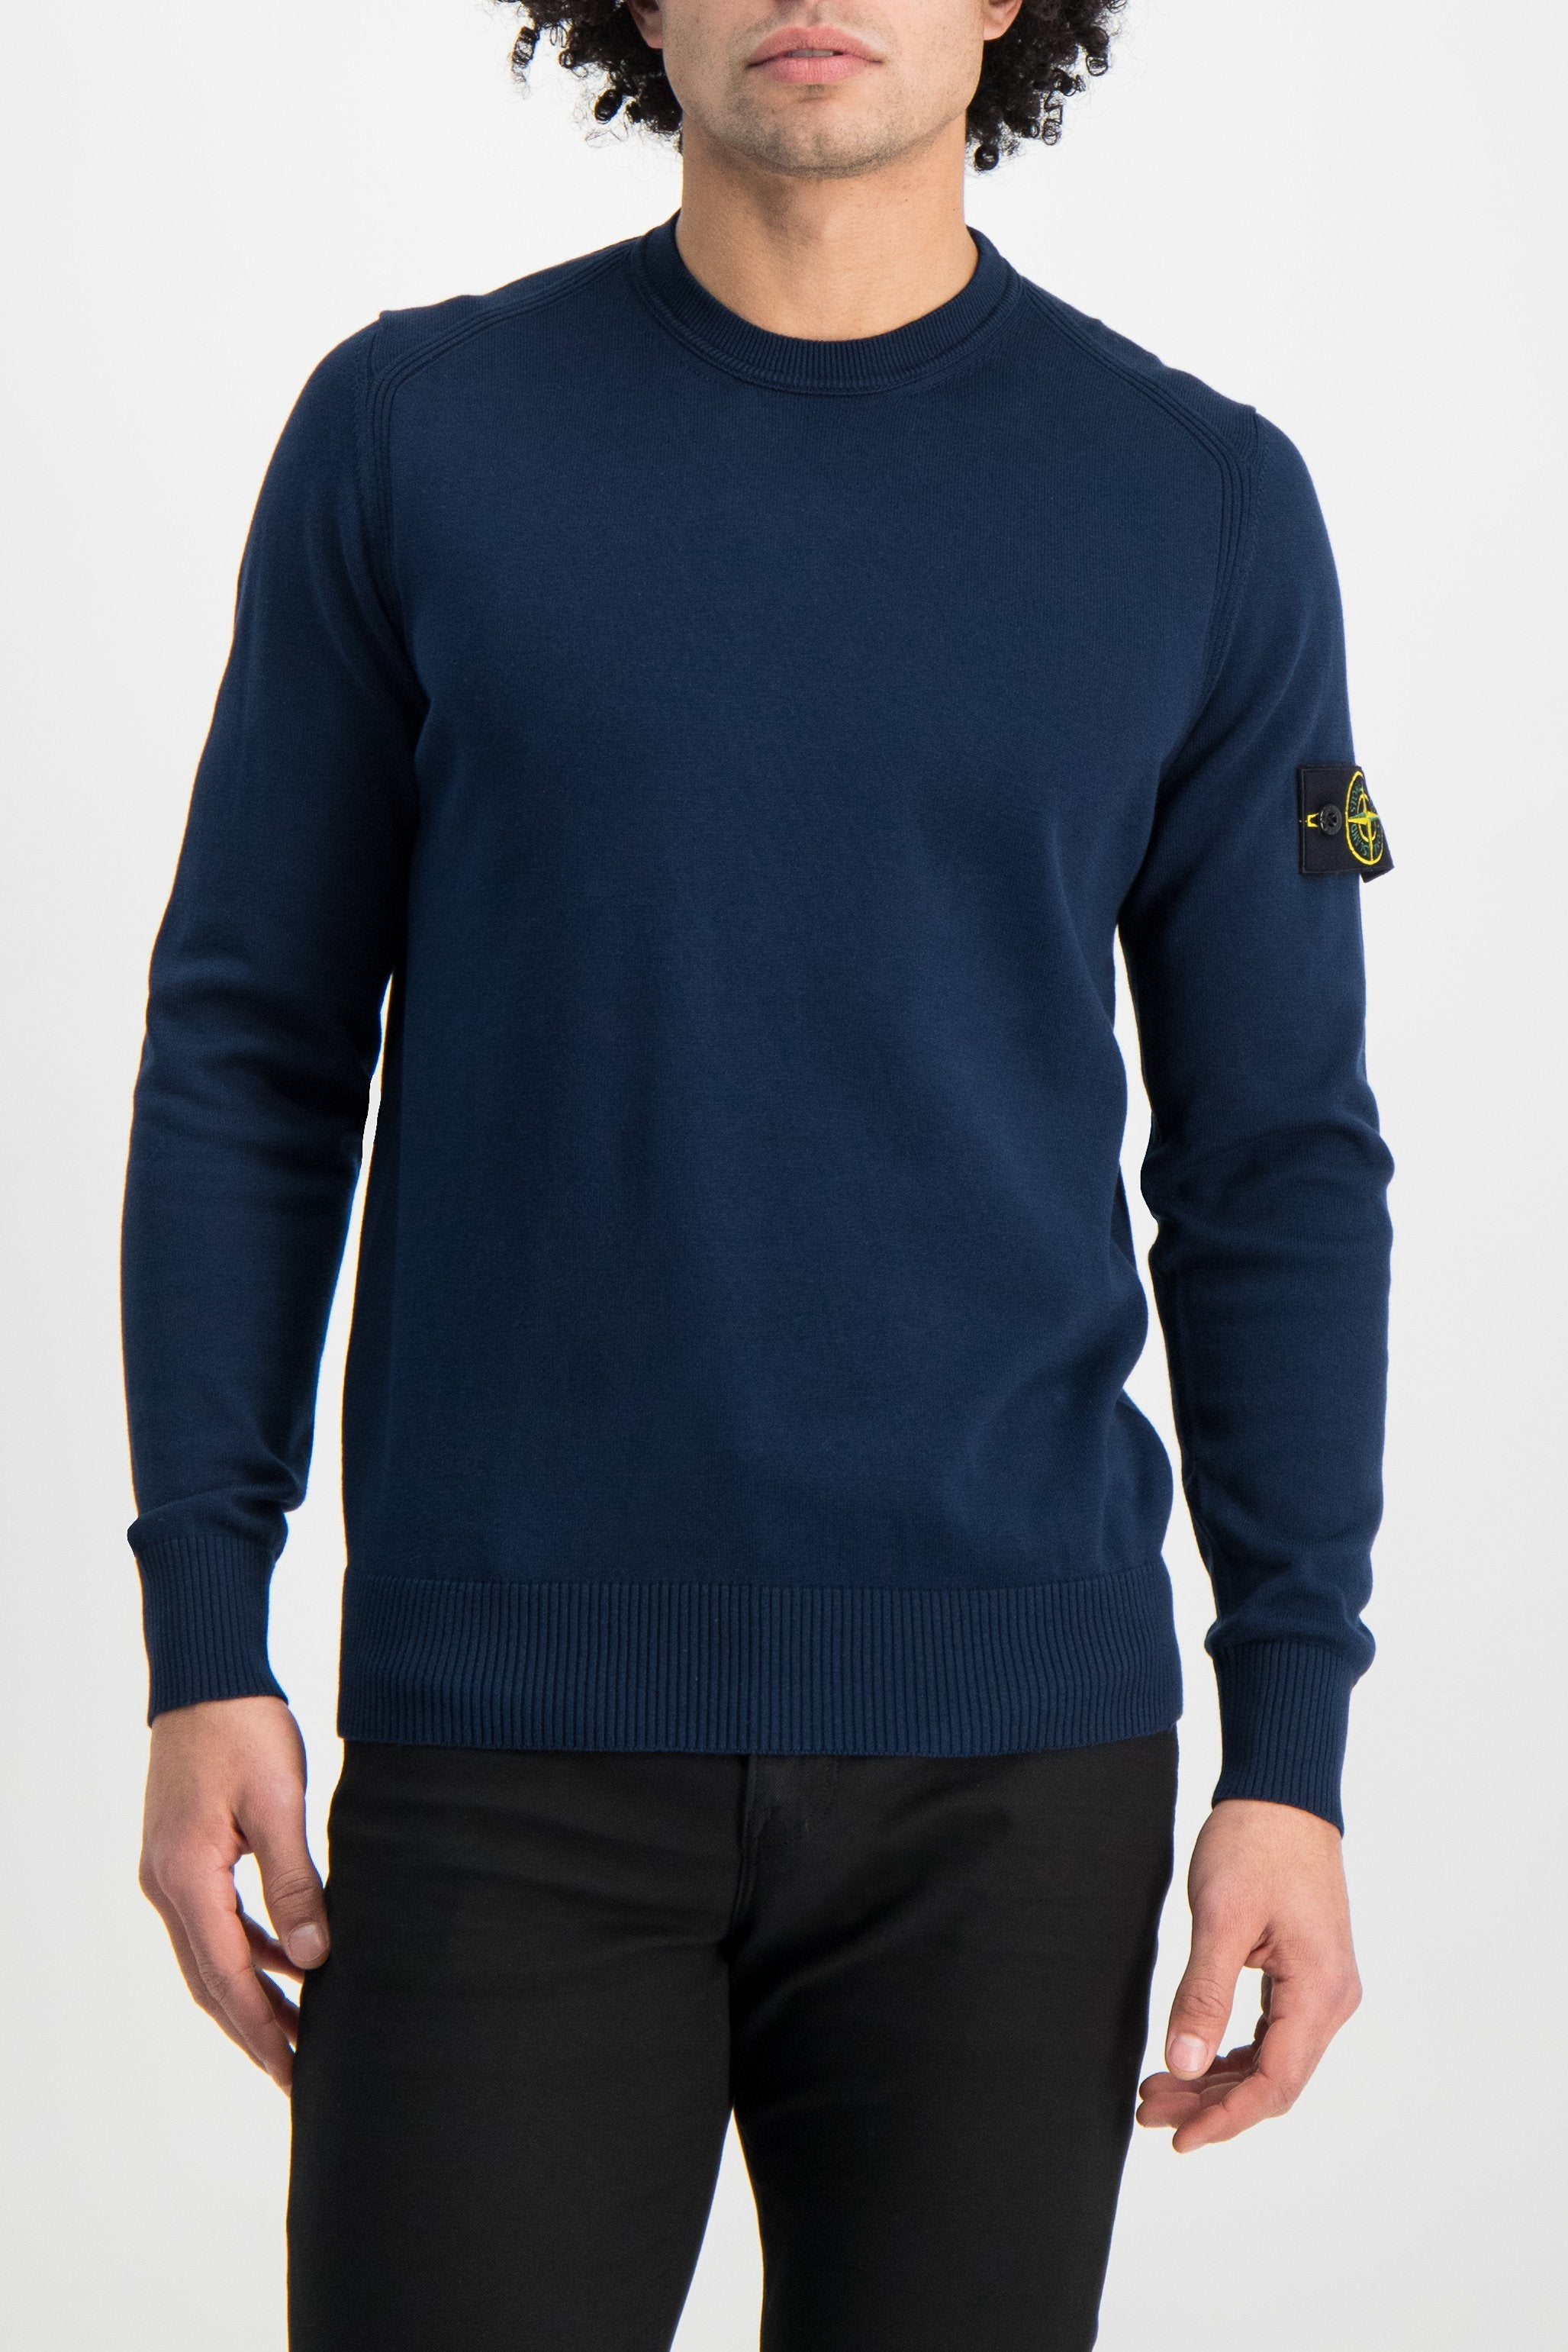 Front Crop Image Of Model Wearing Stone Island Long Sleeve Knit Blue Marine